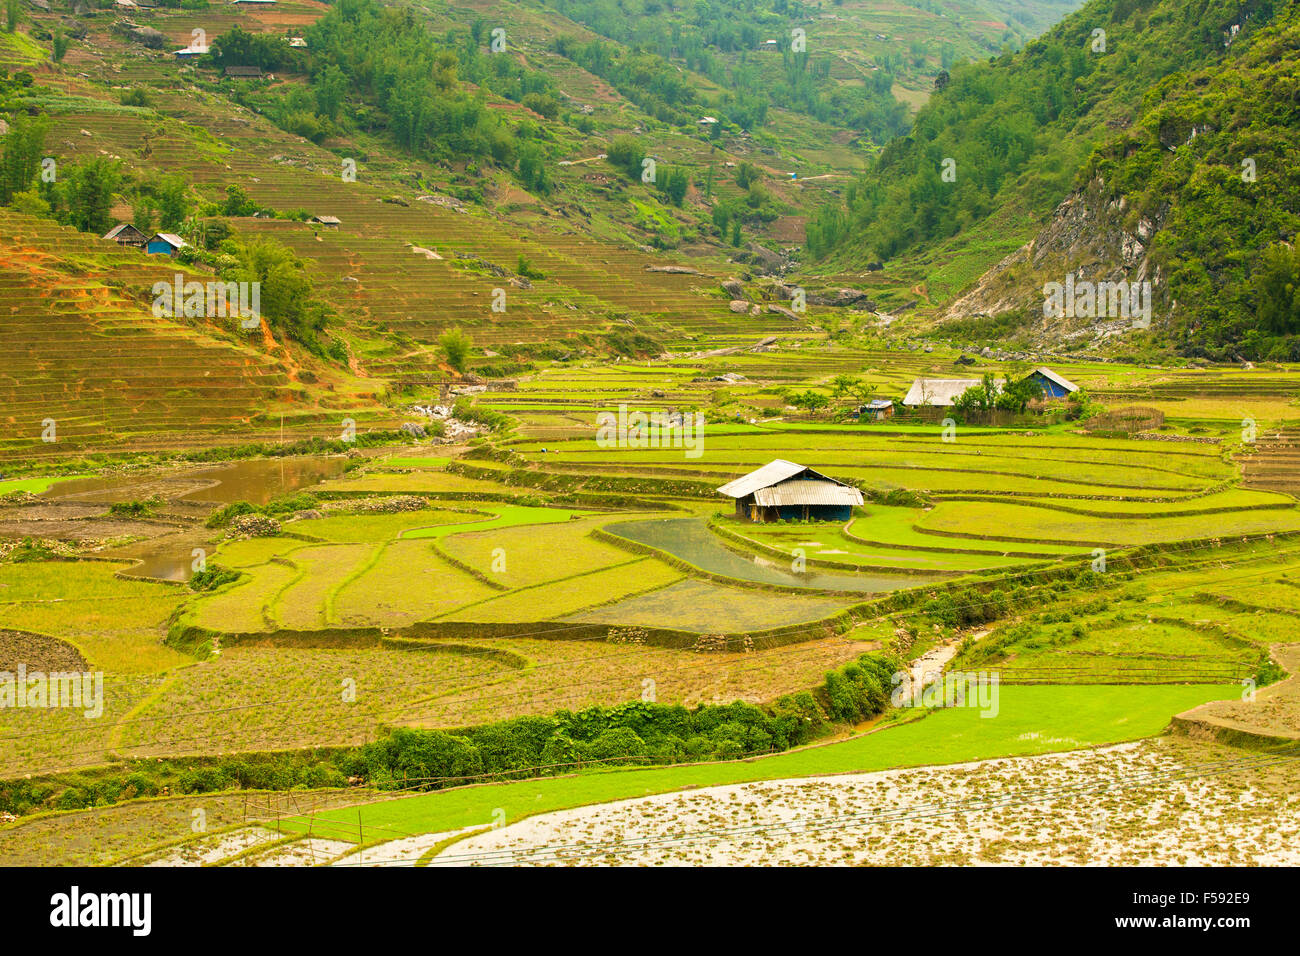 Rice paddies in the mountains near Sapa village, Northern Vietnam. - Stock Image